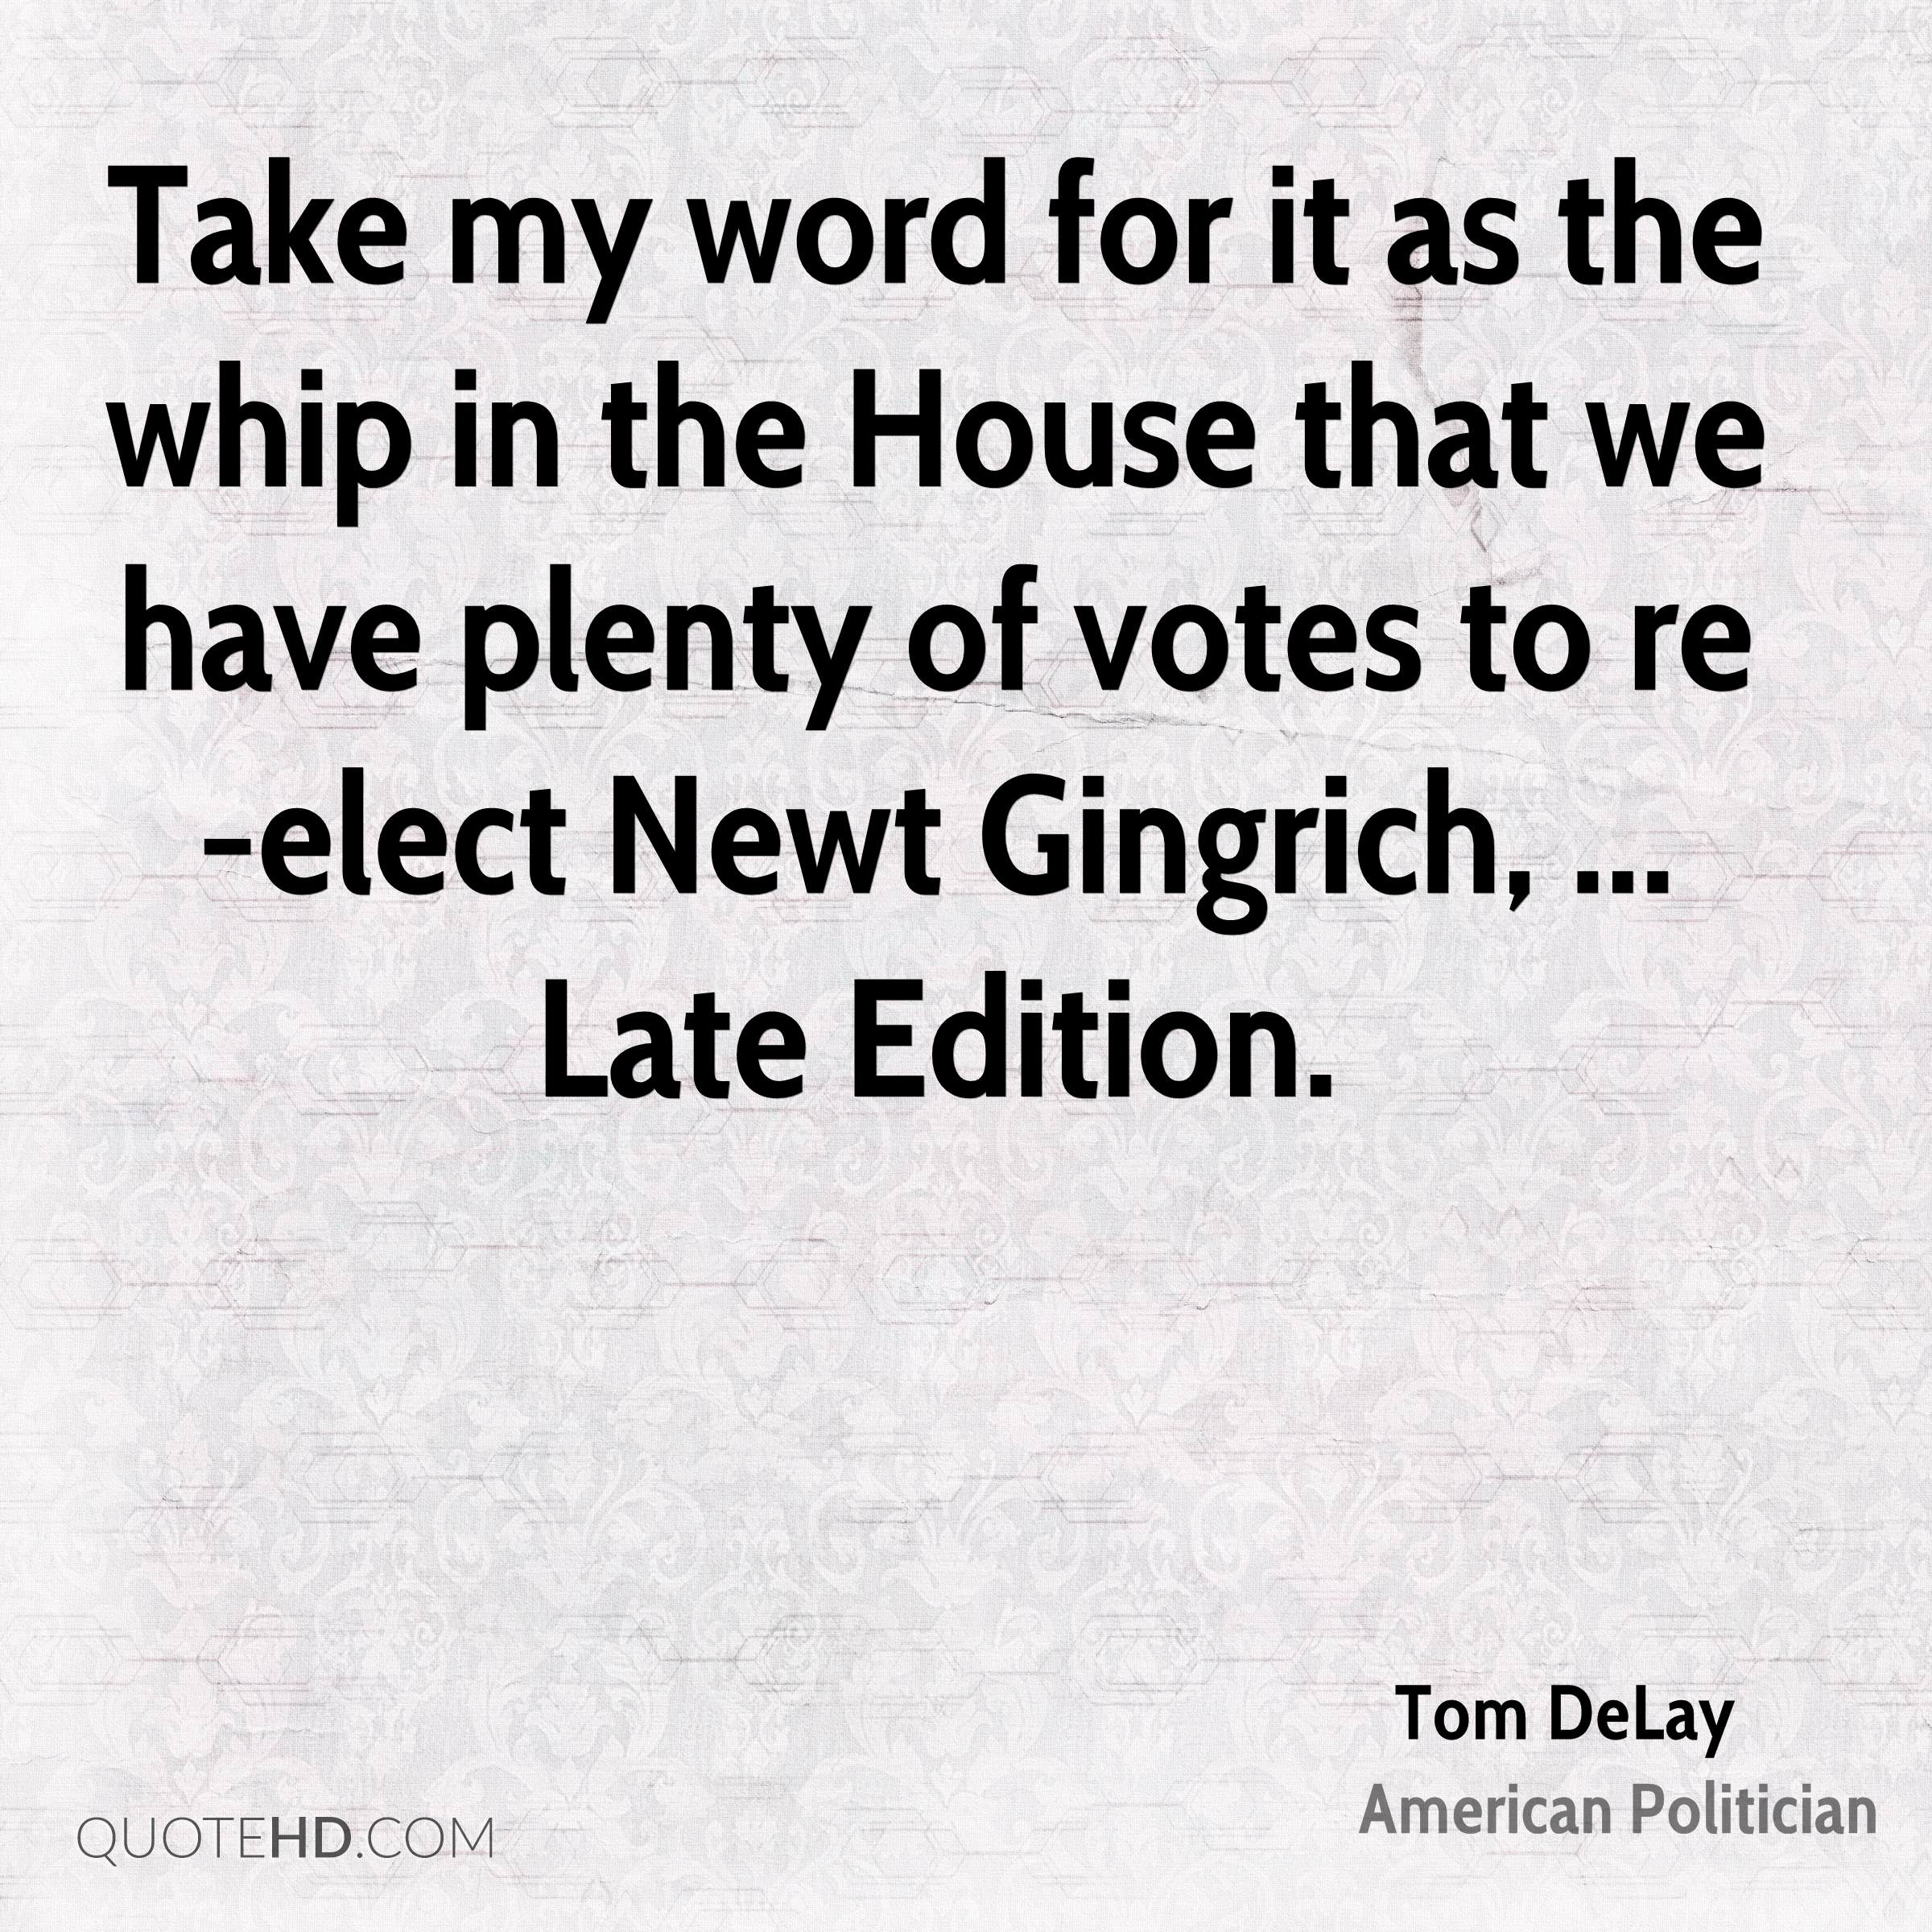 Take my word for it as the whip in the House that we have plenty of votes to re-elect Newt Gingrich, ... Late Edition.